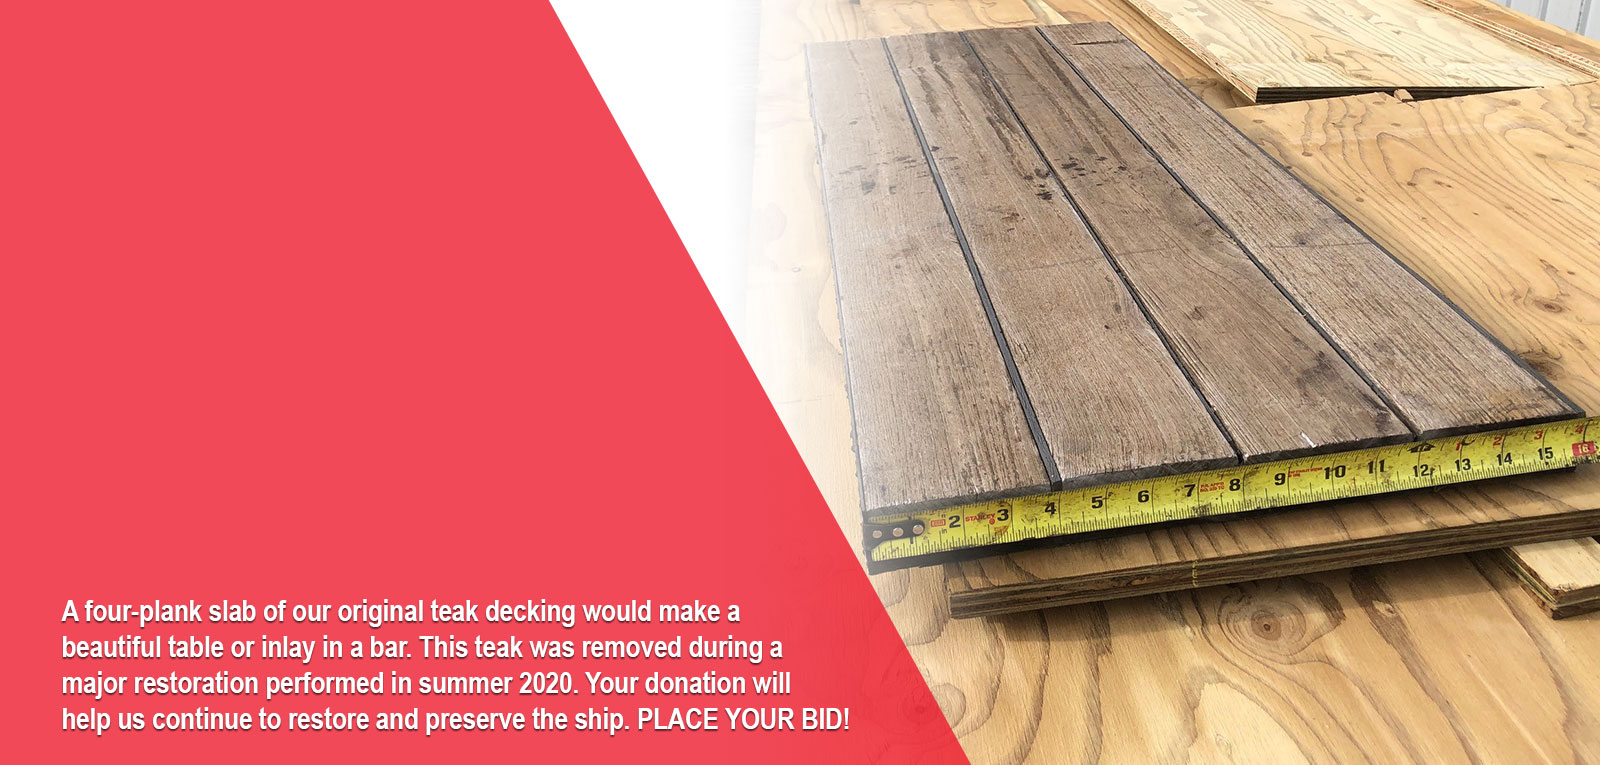 A four-plank slab of our original teak decking up for auction.